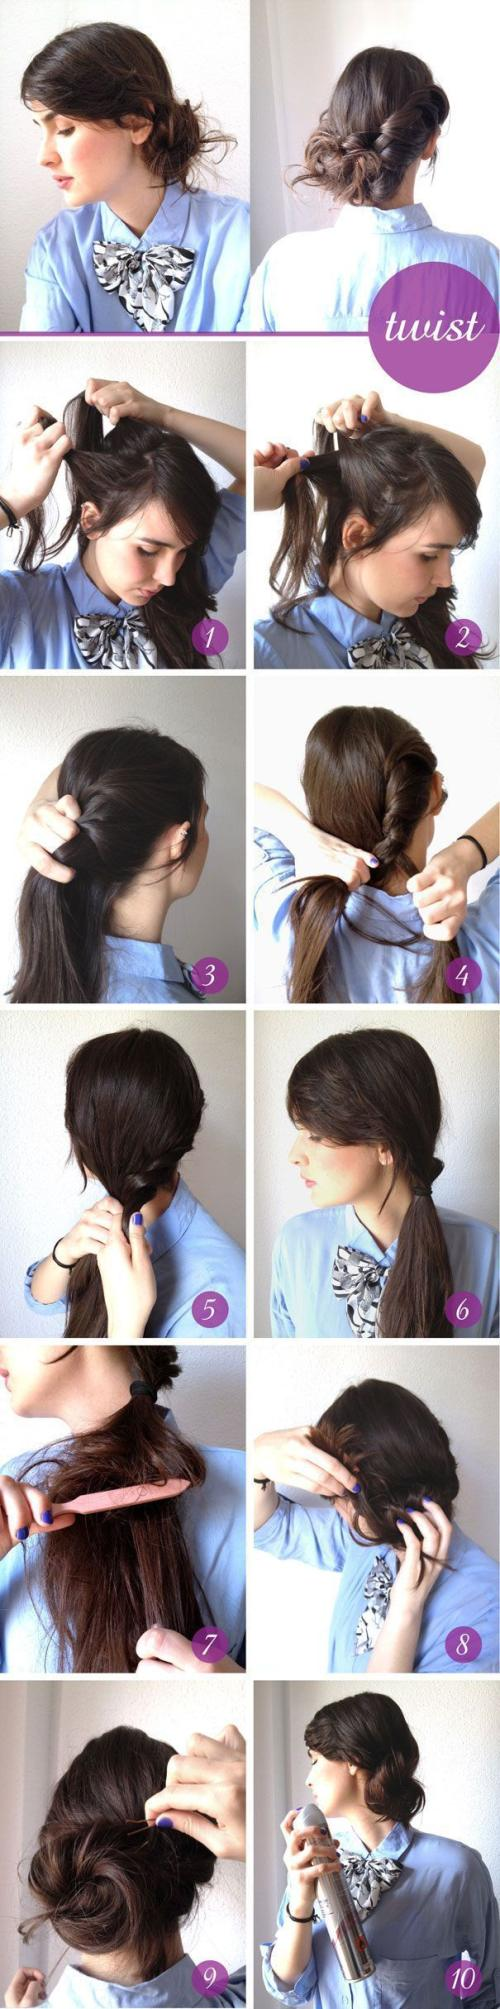 Glamorous Twisted Updo Hairstyle Tutorial